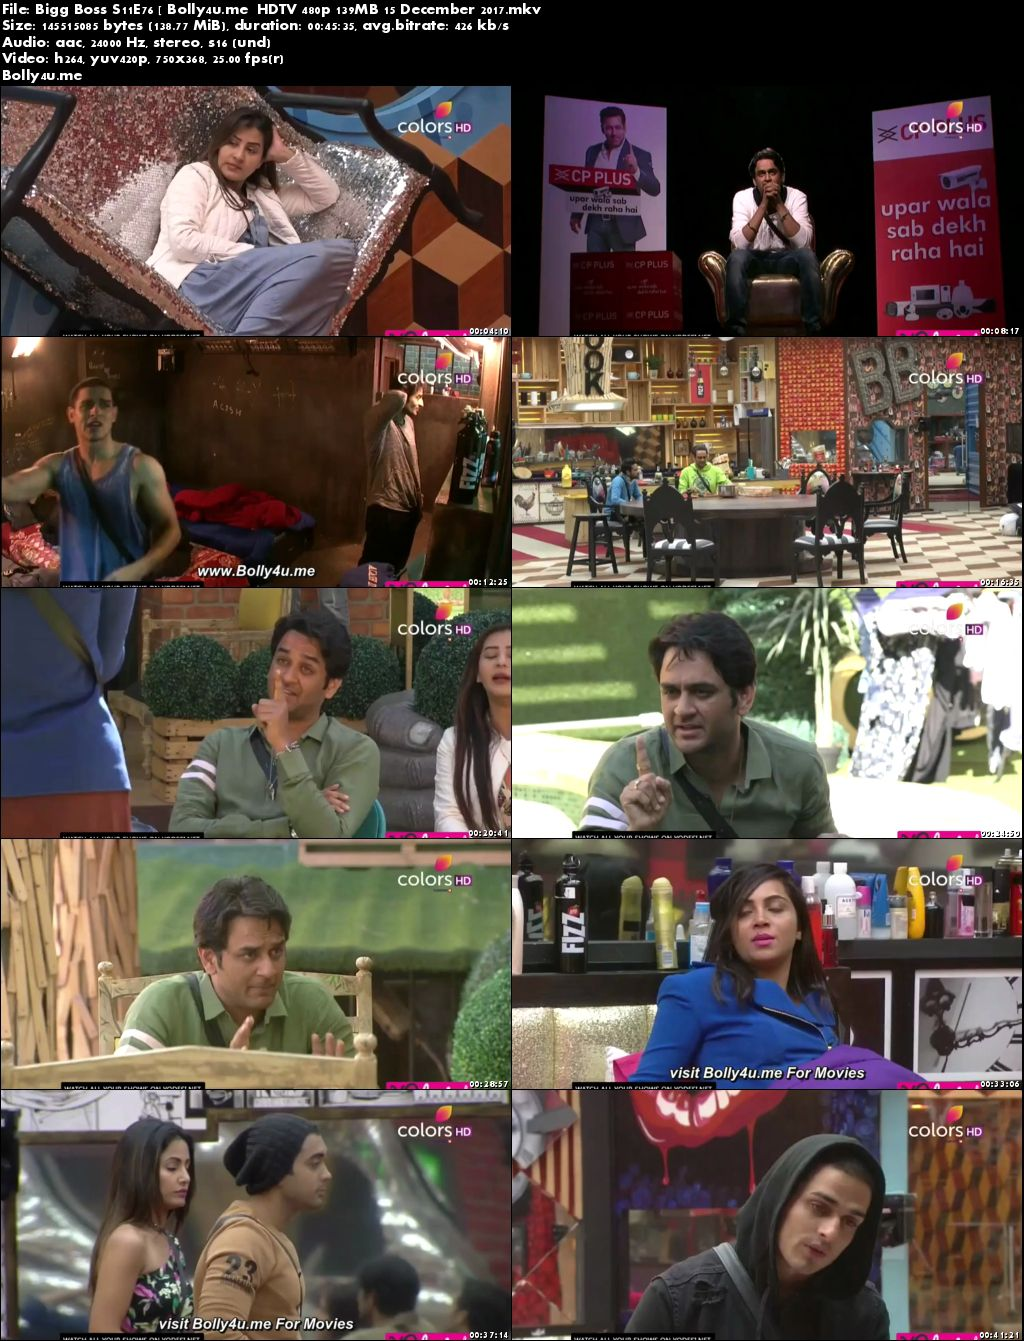 Bigg Boss S11E76 HDTV 480p 140MB 15 December 2017 Download